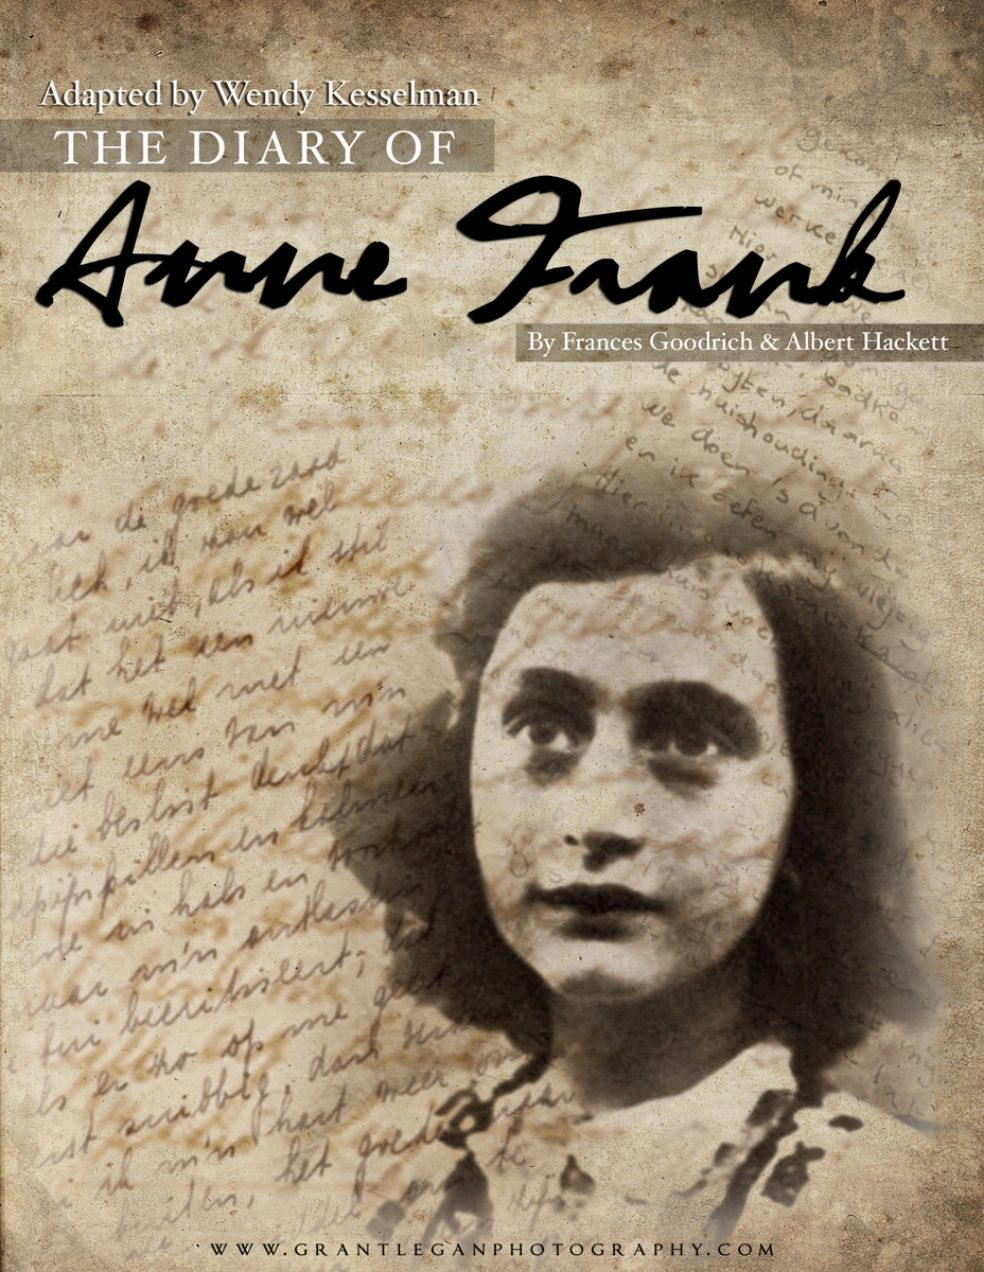 the diary of anne frank vs After a string of anti-semitic incidents, anne frank's diary was read to italian soccer fans.